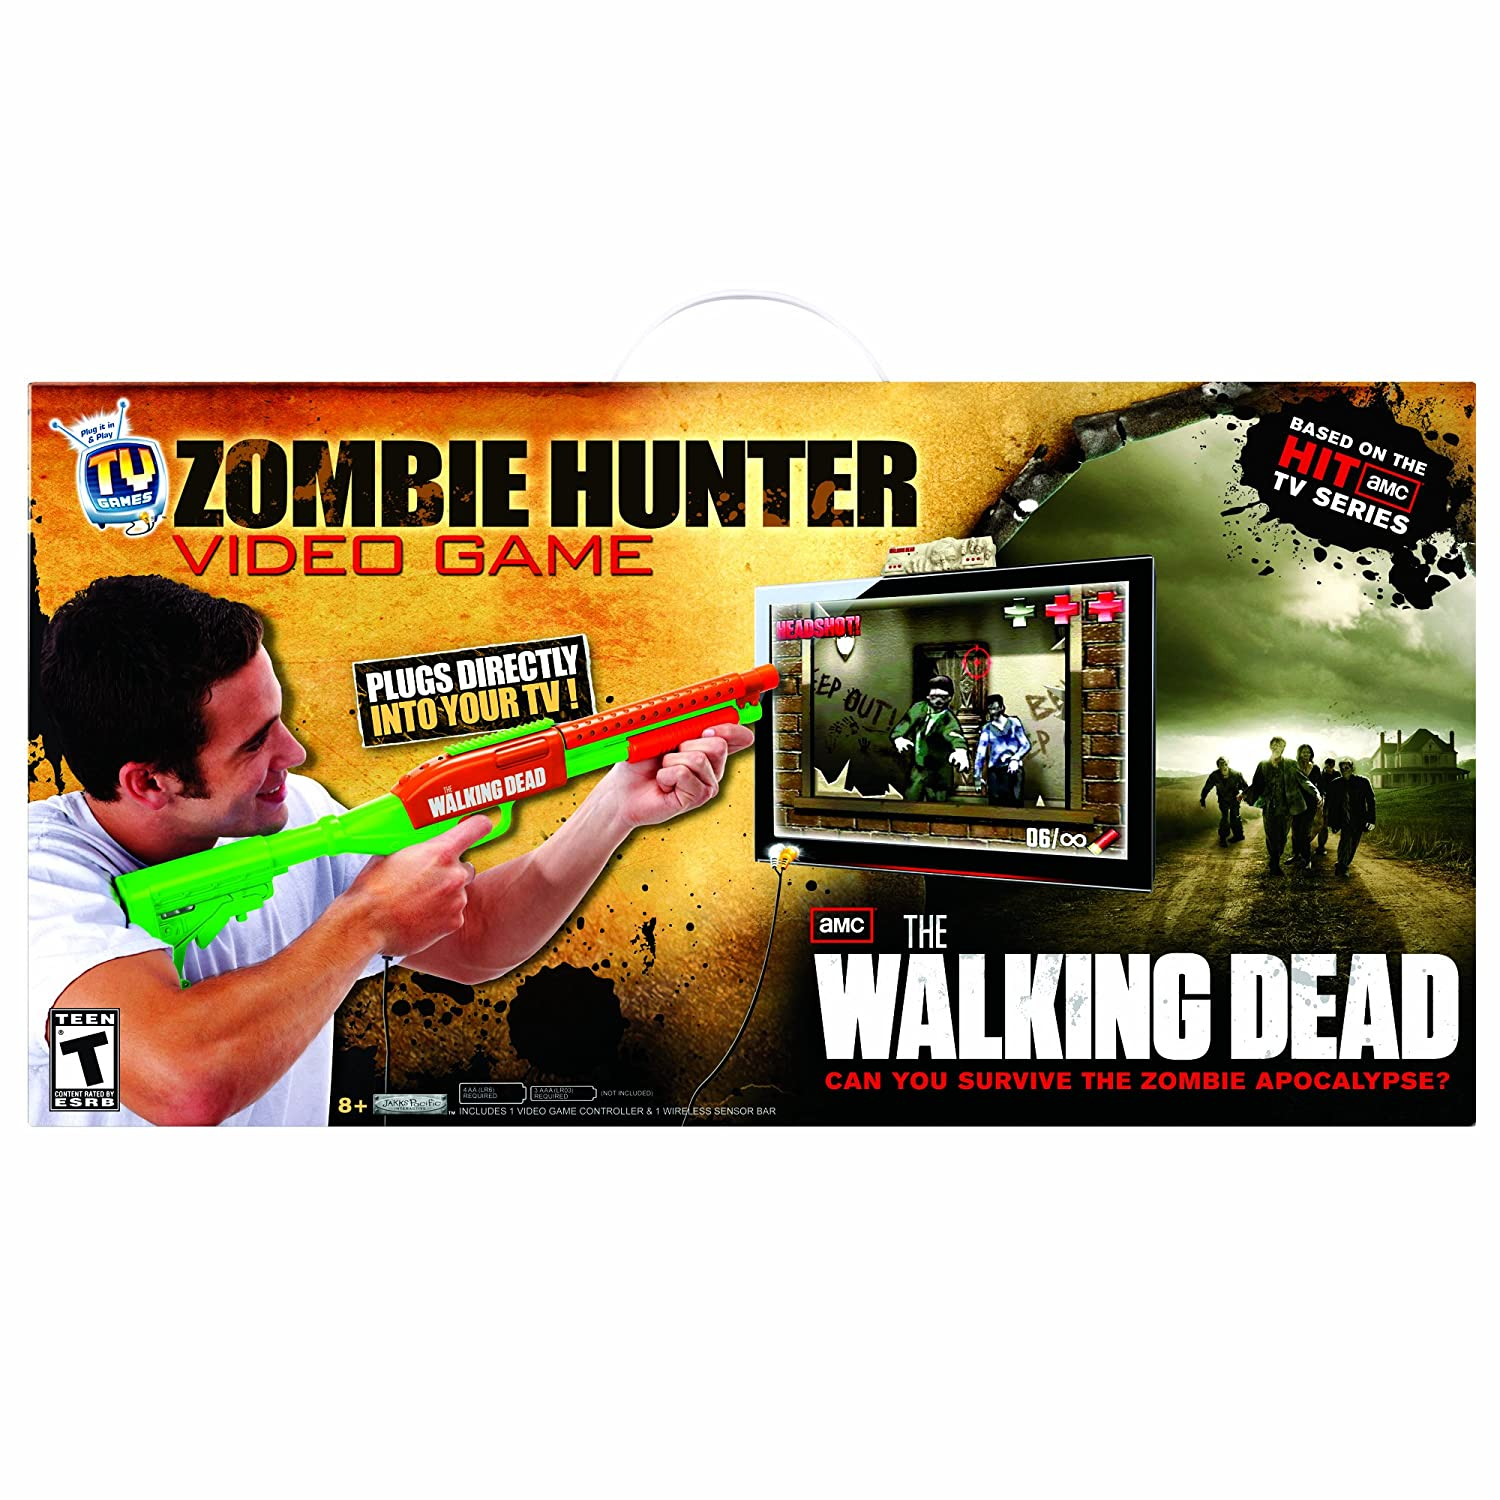 The Walking Dead Zombie Hunter Video Game B0088AJQ9A